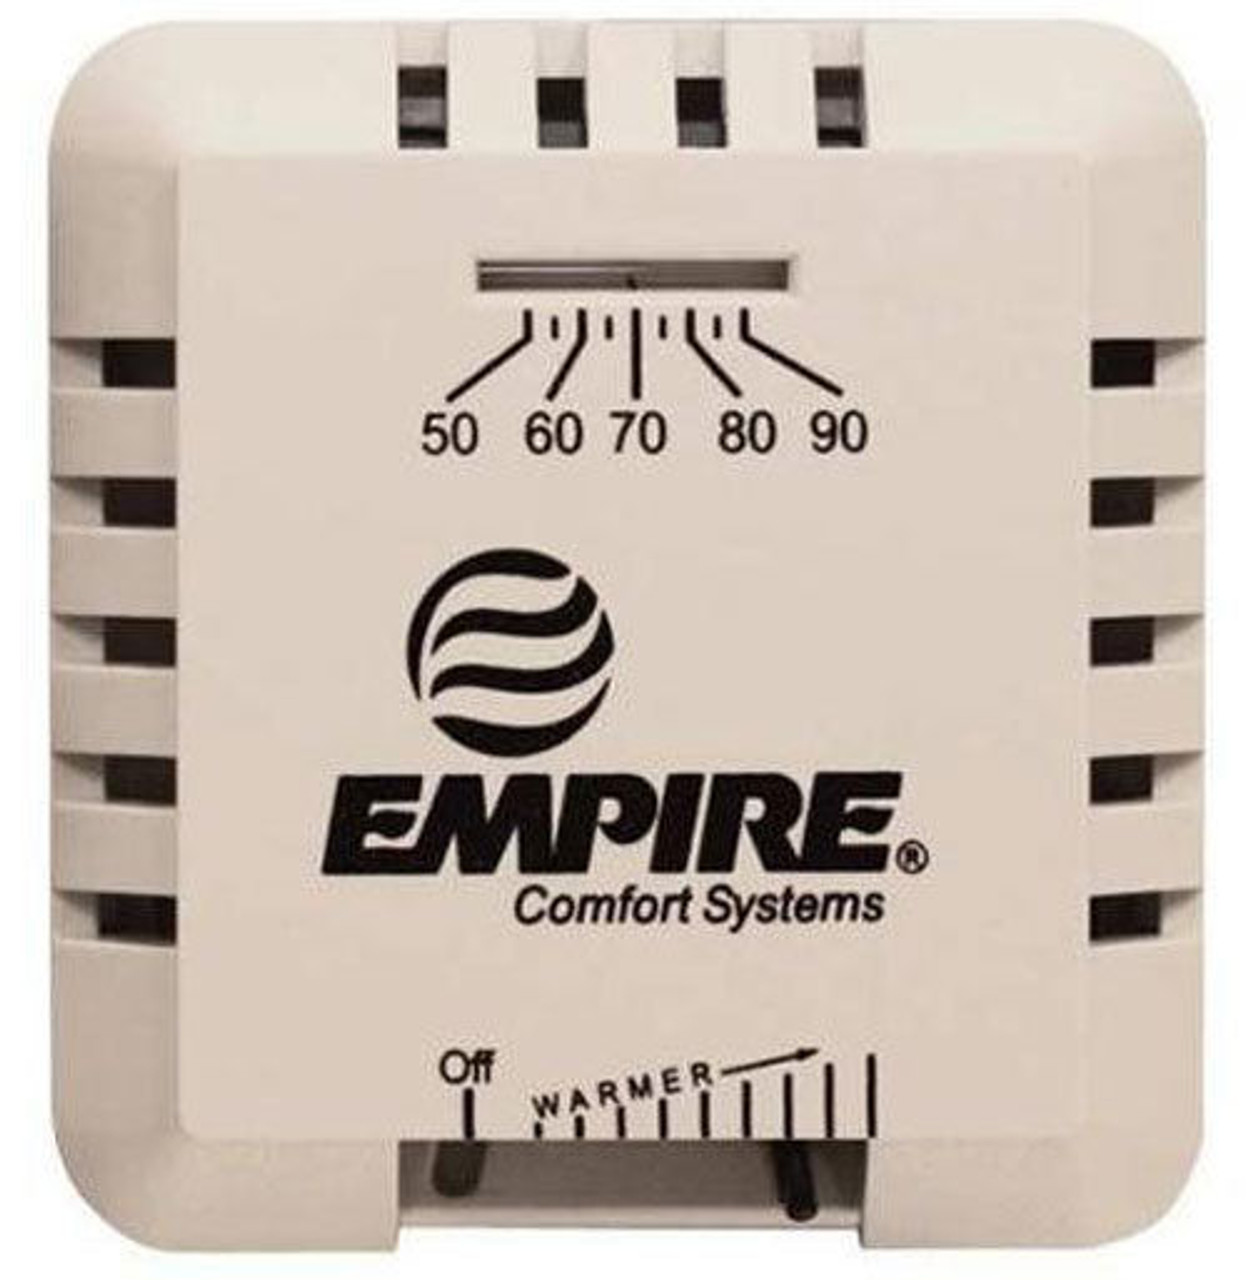 INCLUDES WALL MOUNT THERMOSTAT